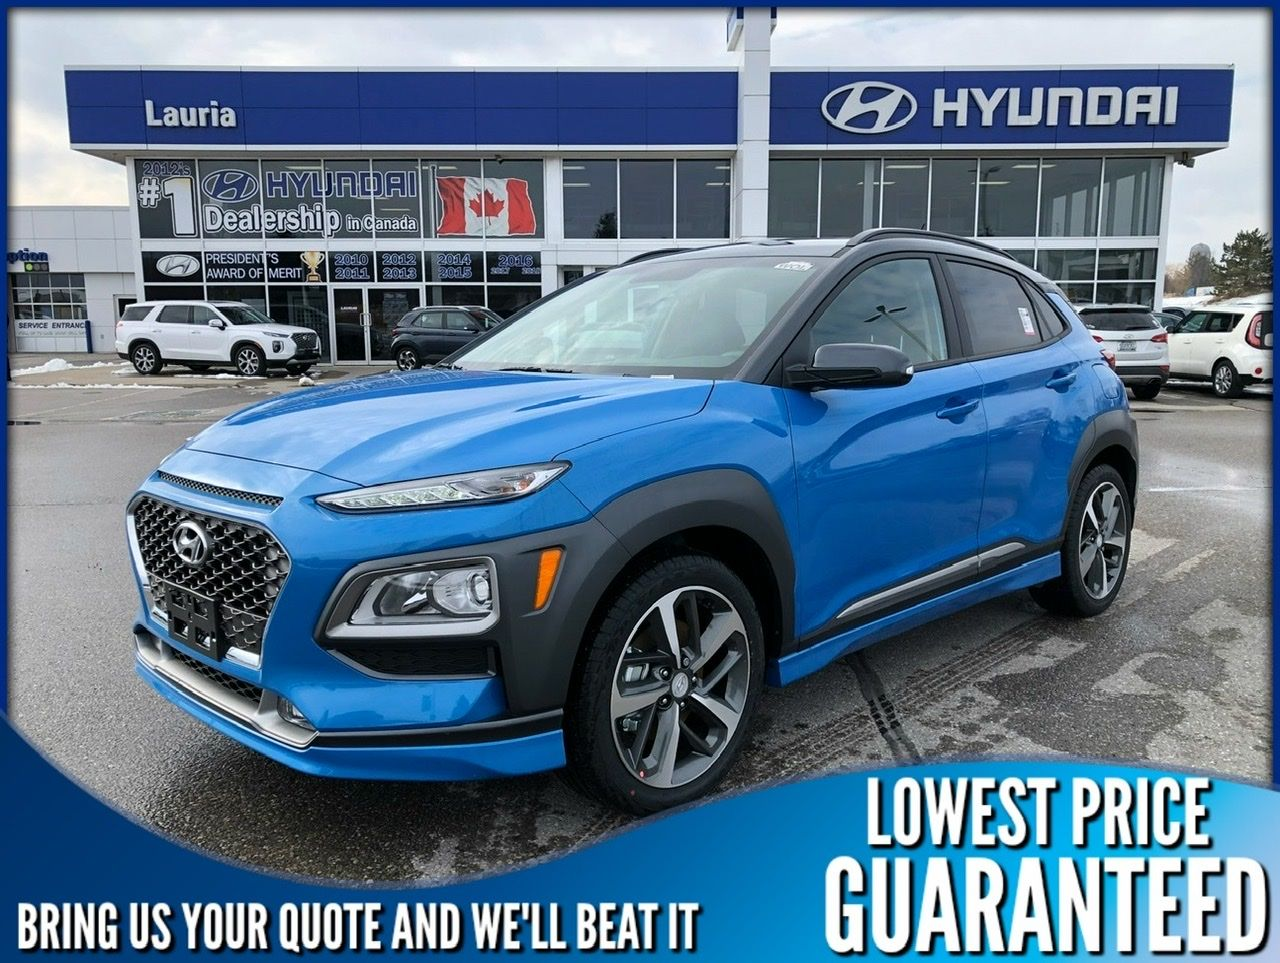 New 2020 Hyundai Kona 1.6T AWD Trend Two-Tone Roof